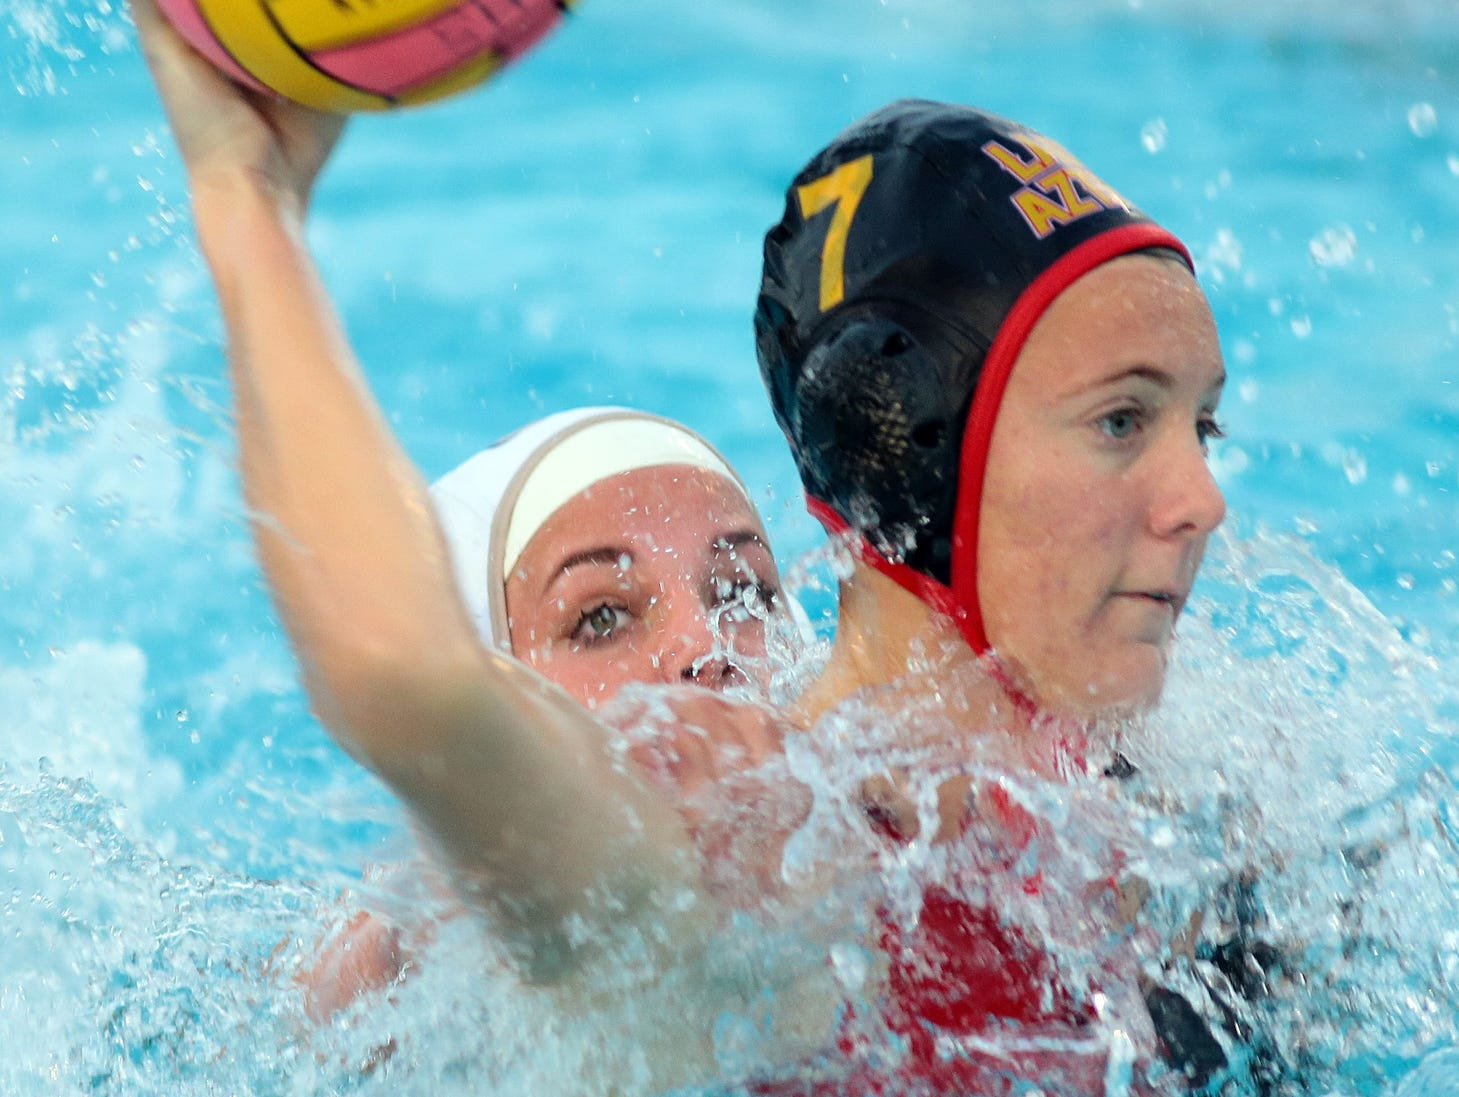 Palm Desert's Elise Stein (black cap) plays during a CIF playoff game against the Citrus Valley Blackhawks (white caps) on Wednesday, February 18, 2015. Palm Desert won 14-4.